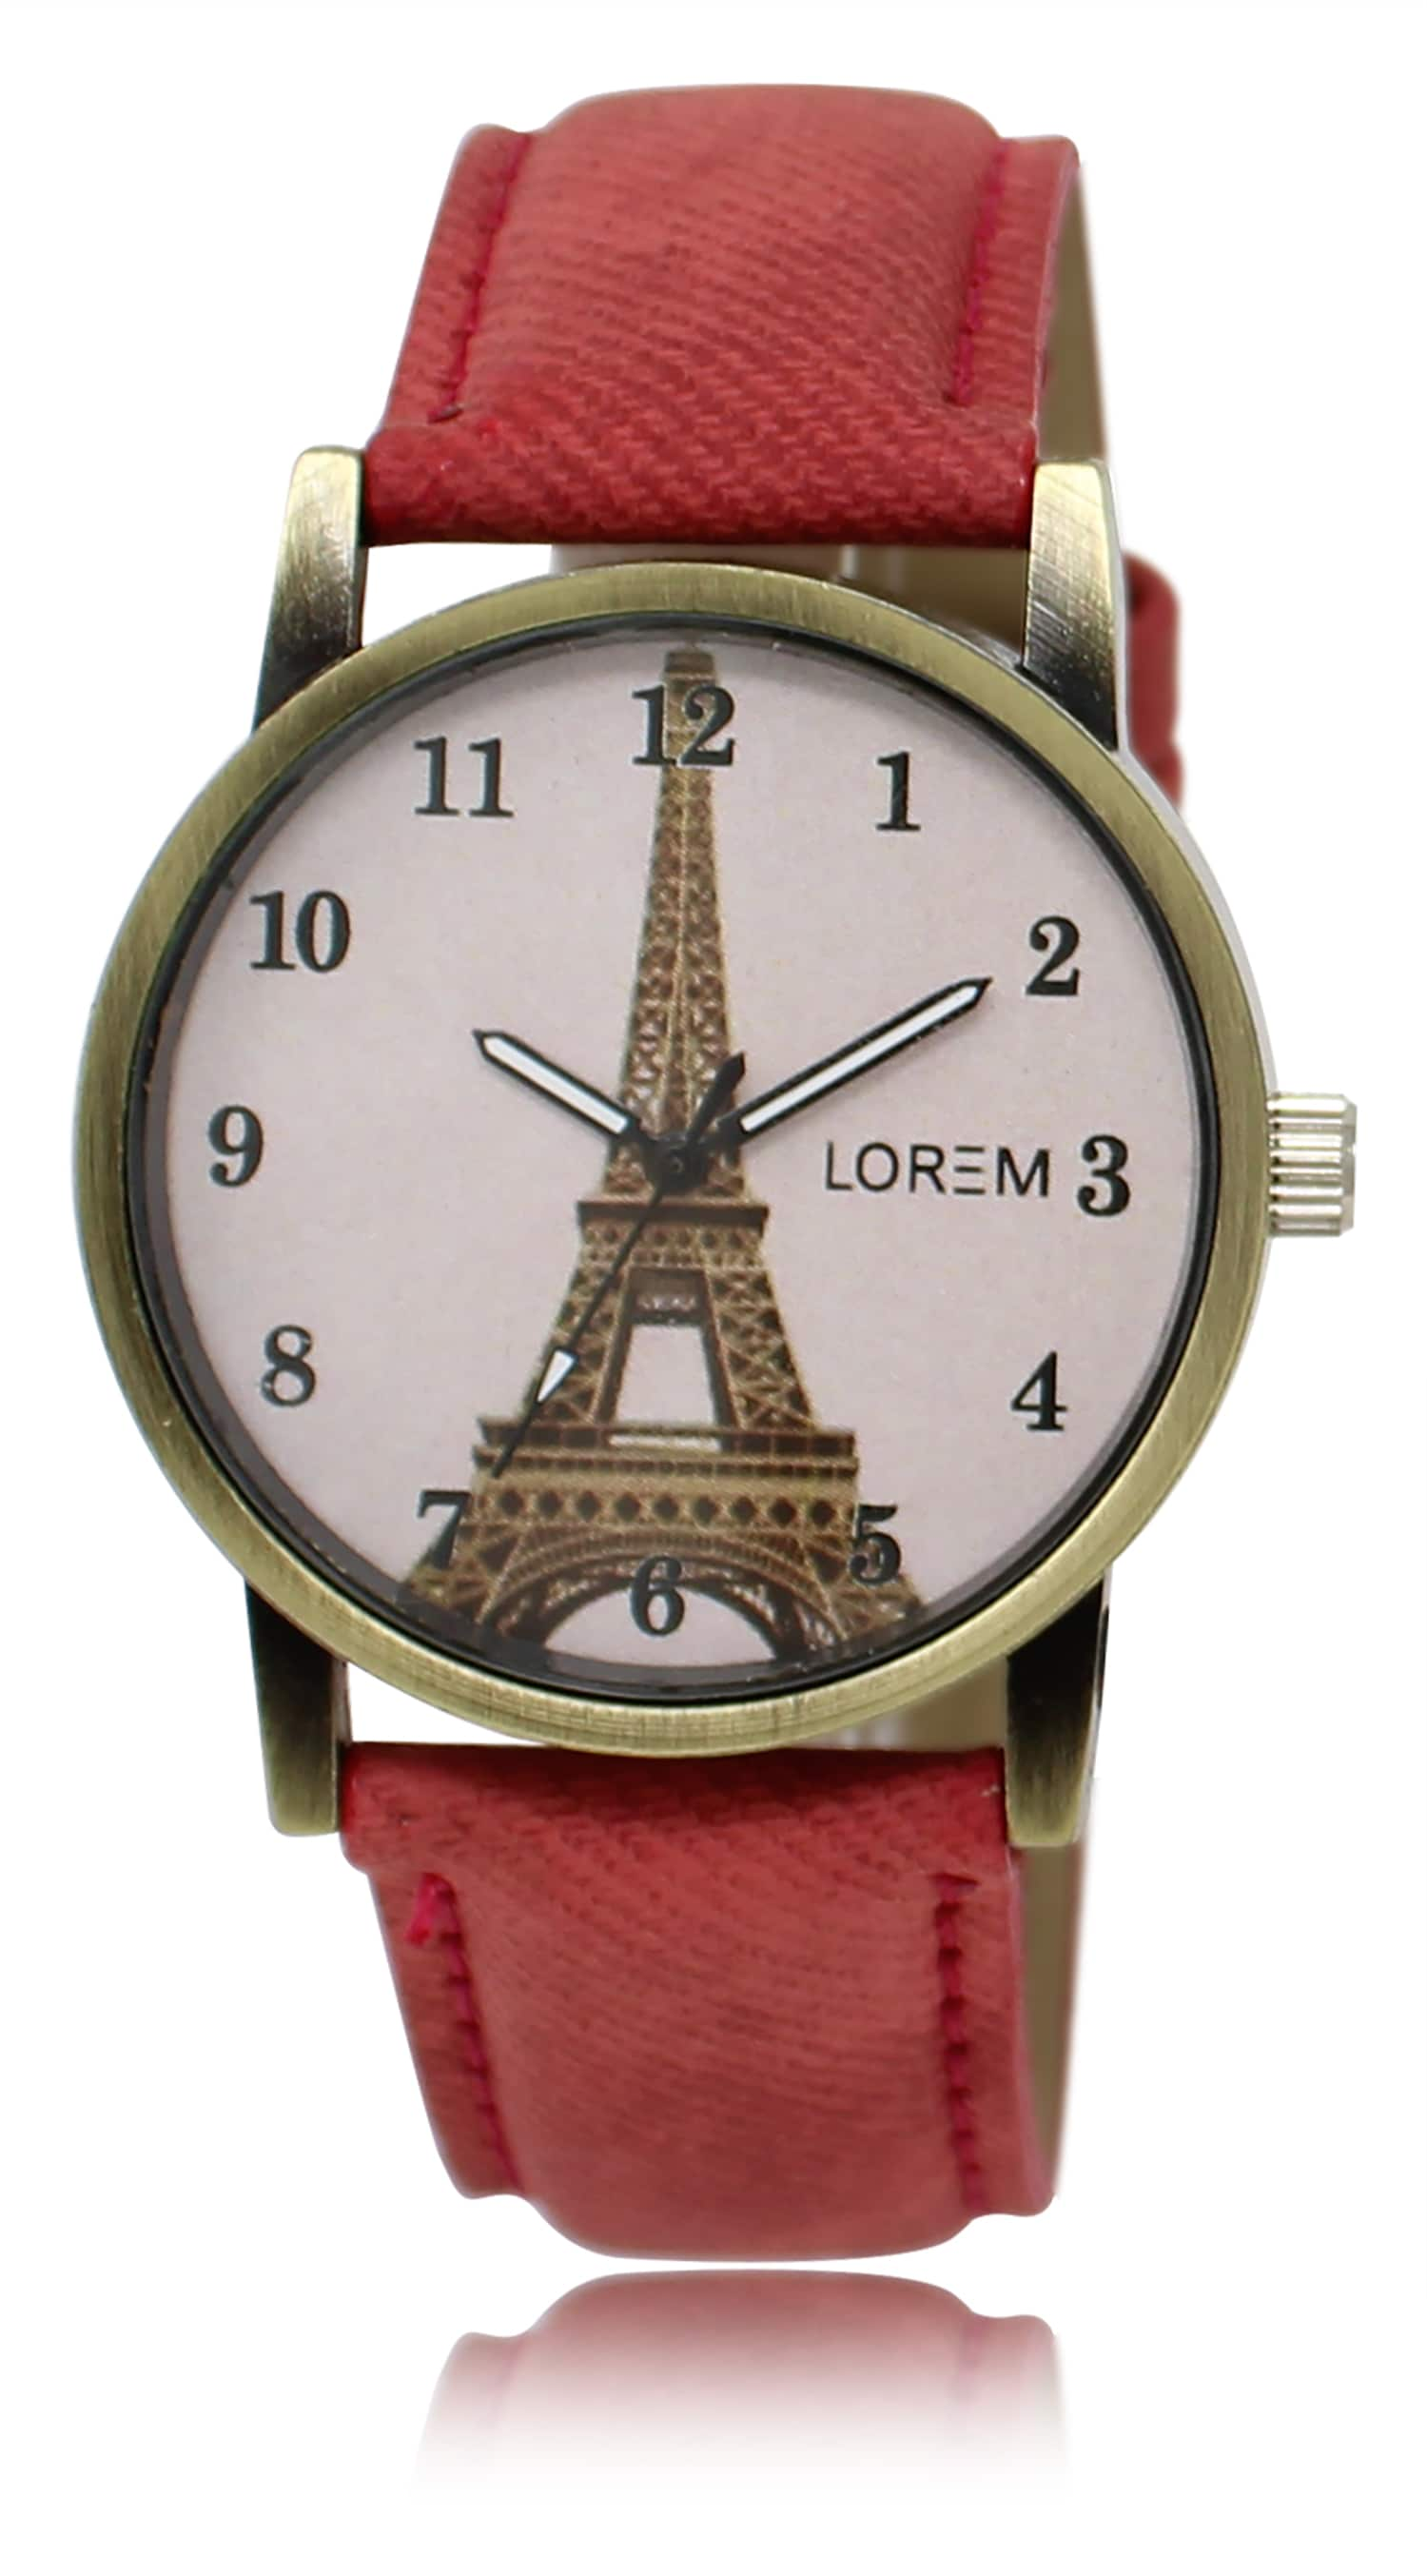 LOREM New Leather Strap Analogue Watch For Women